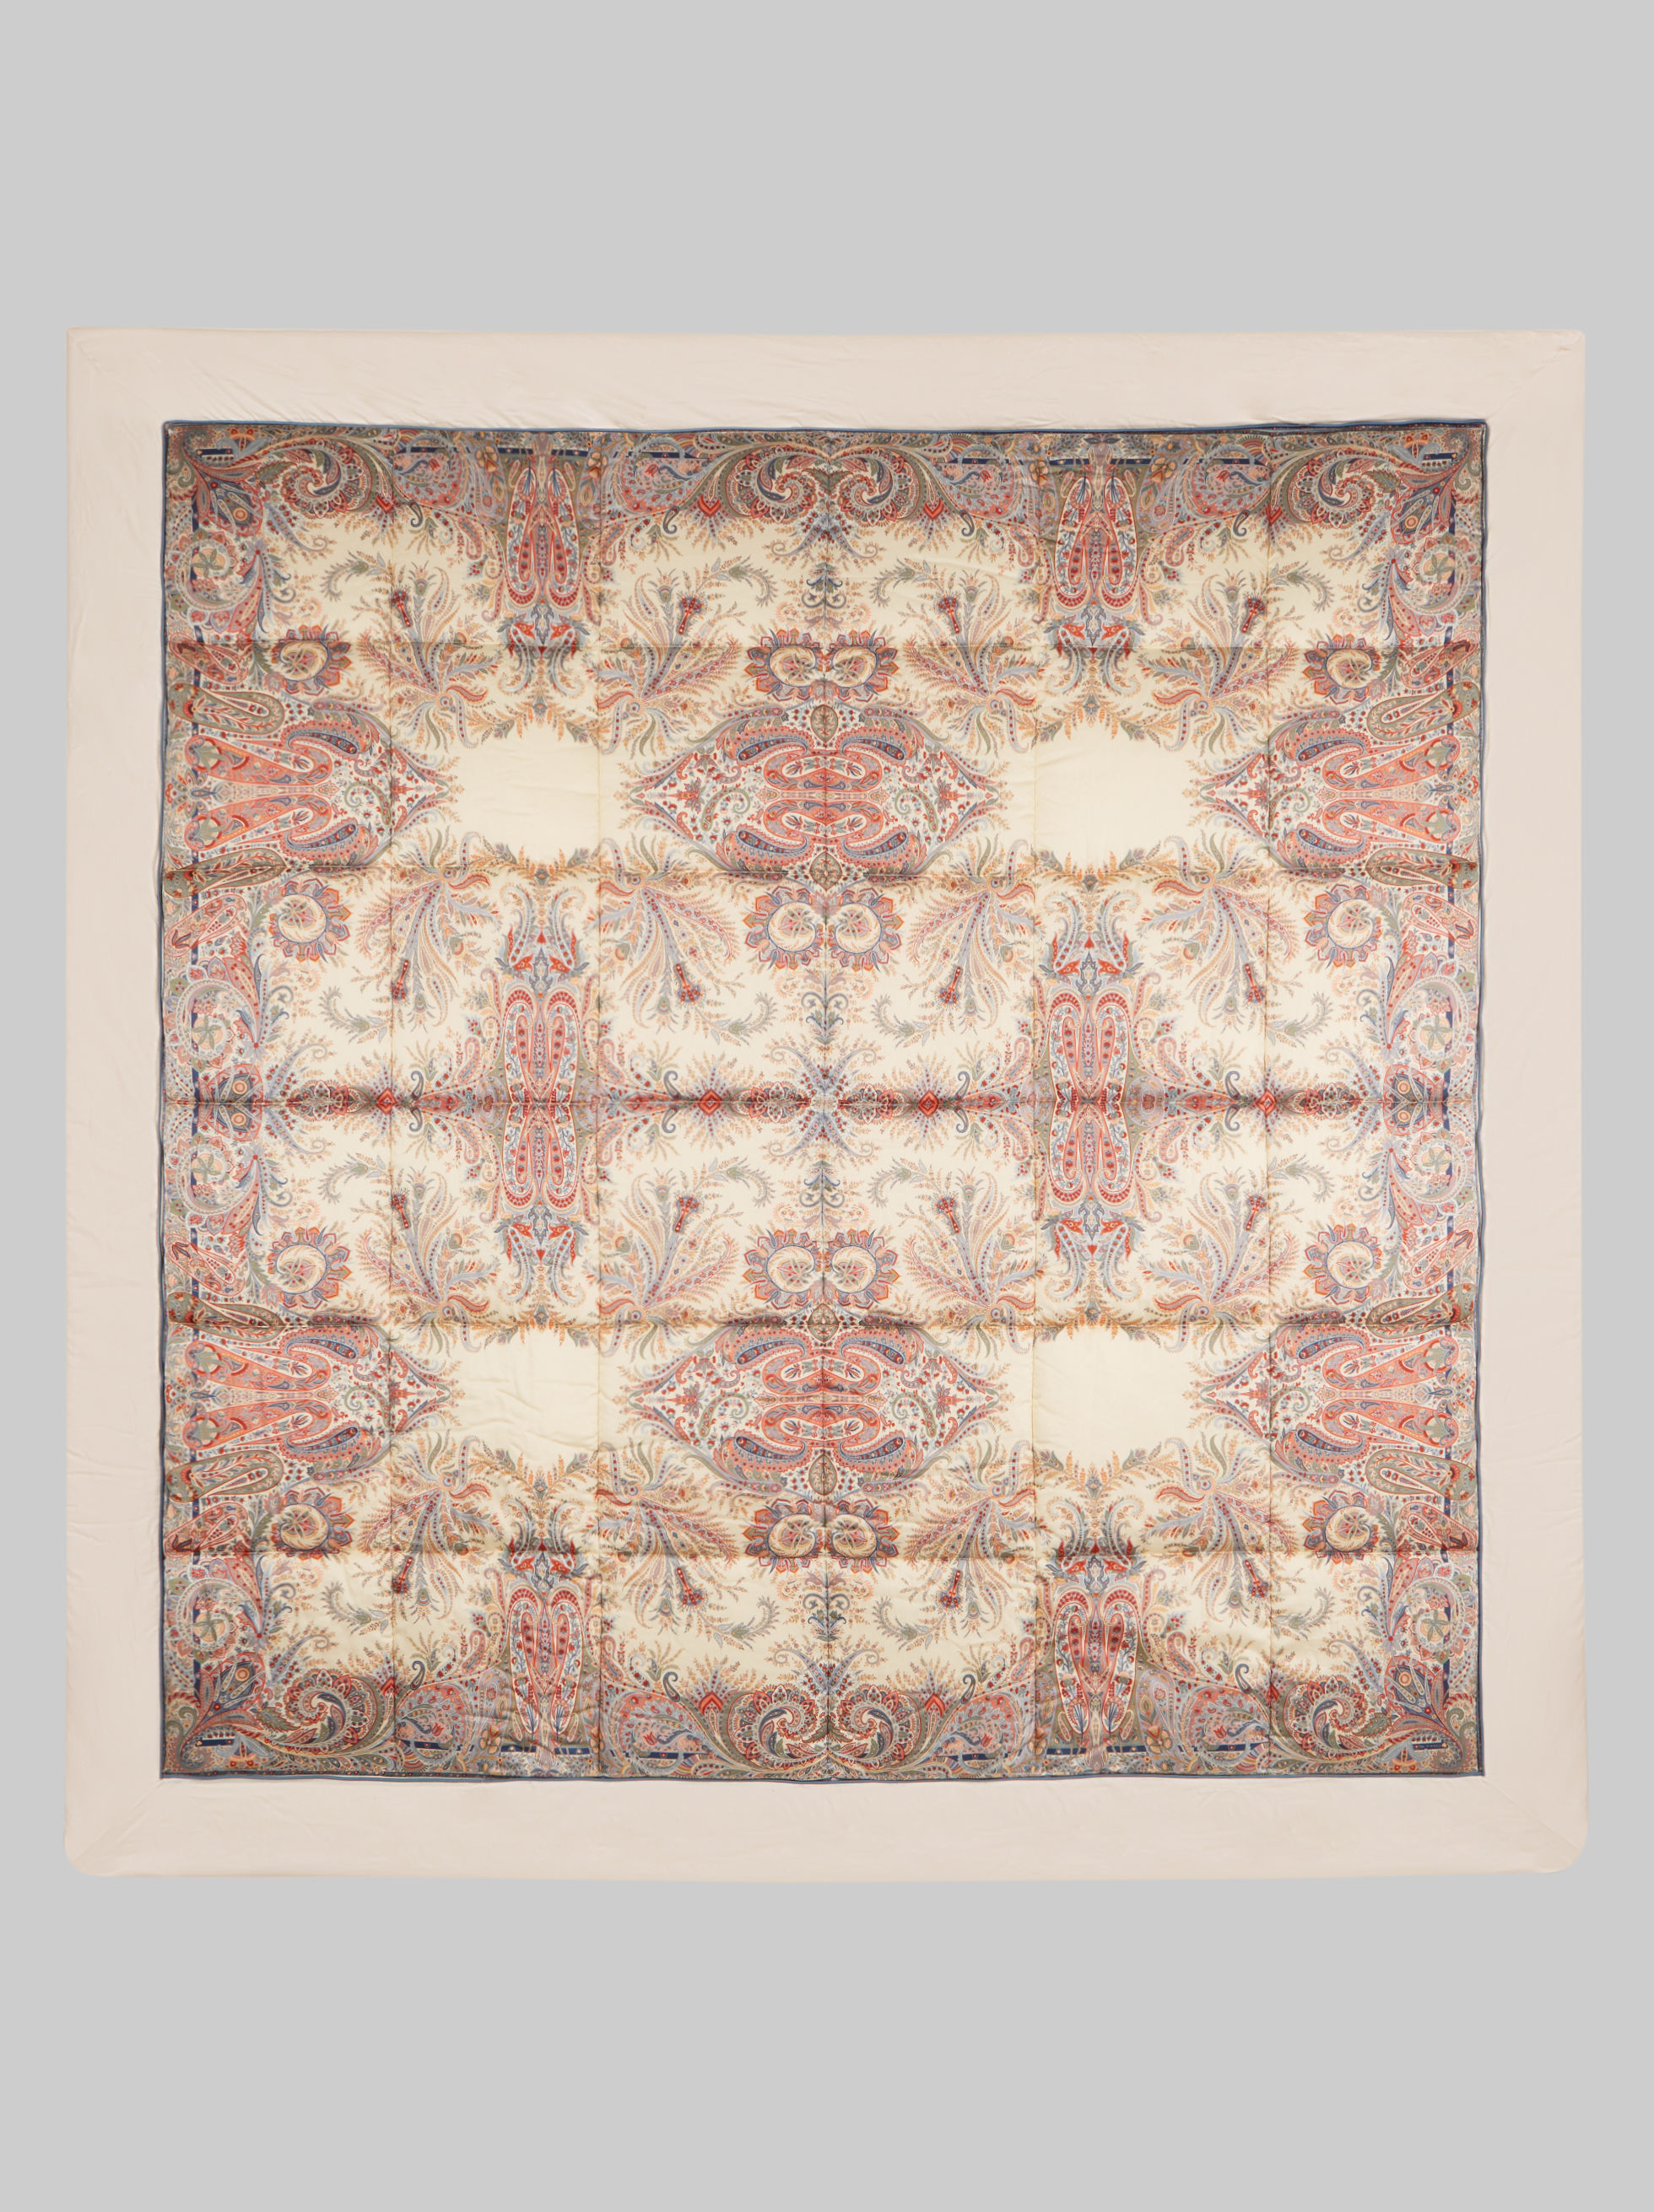 COTTON QUILT WITH LEAFY PAISLEY DECORATIONS